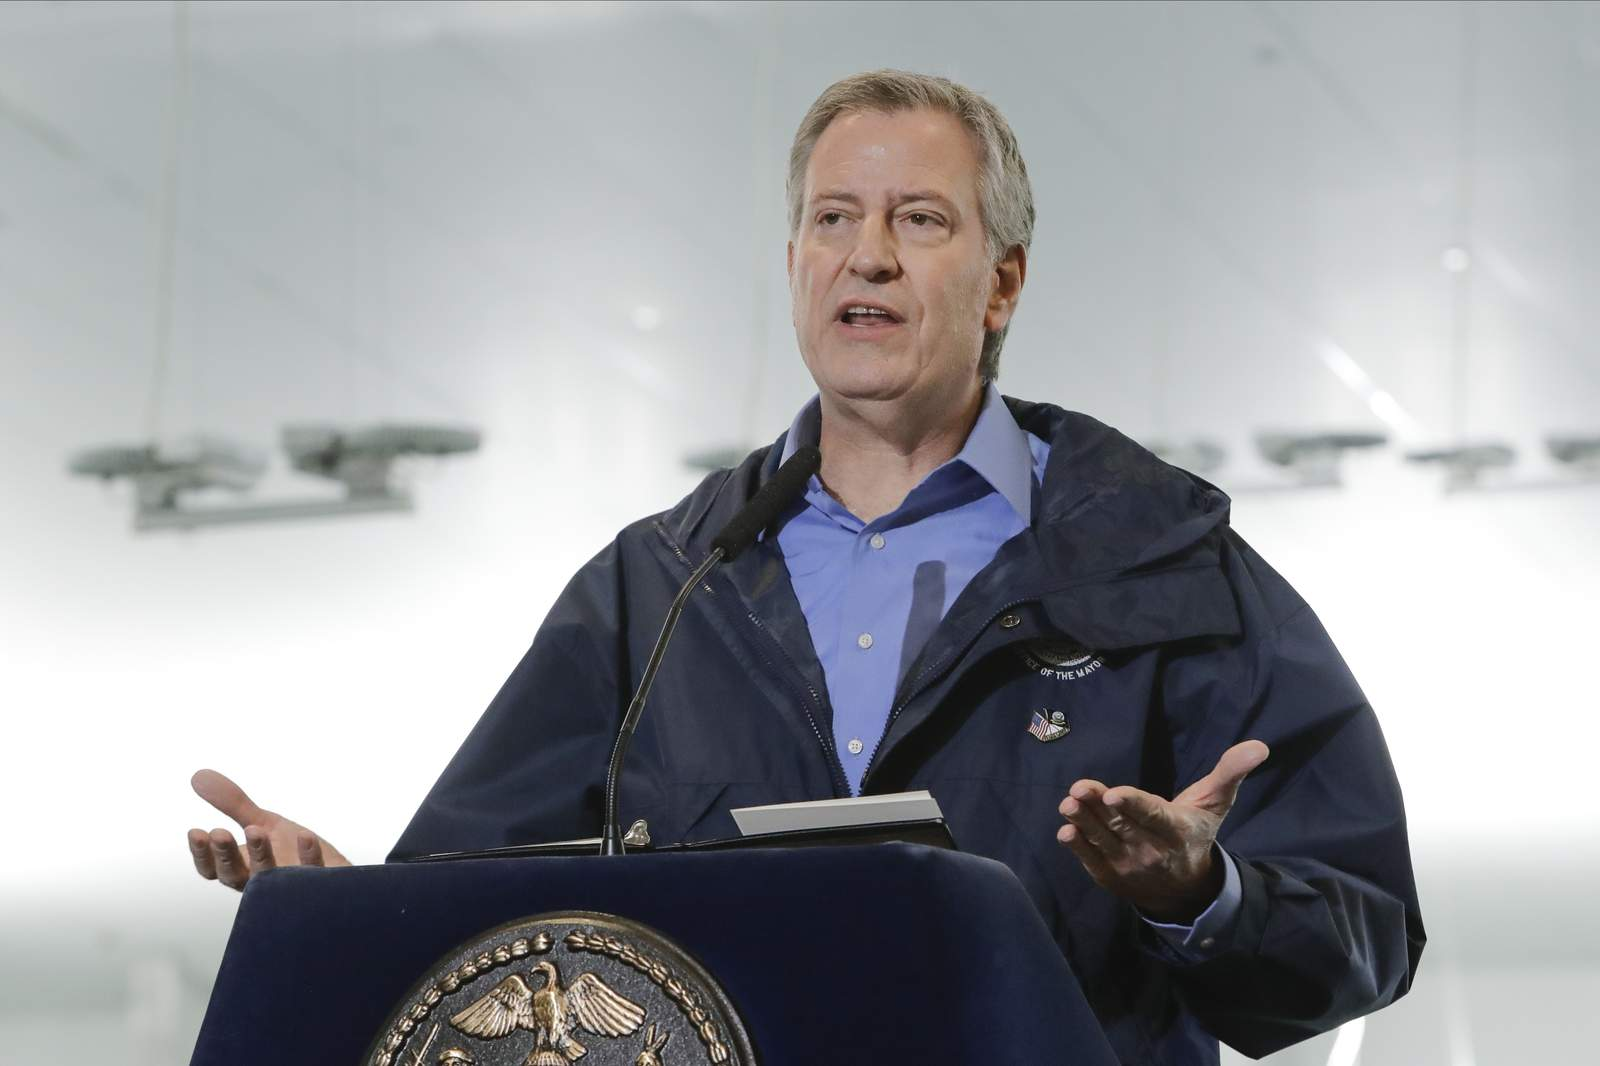 NYC keeping schools closed; online classes to continue